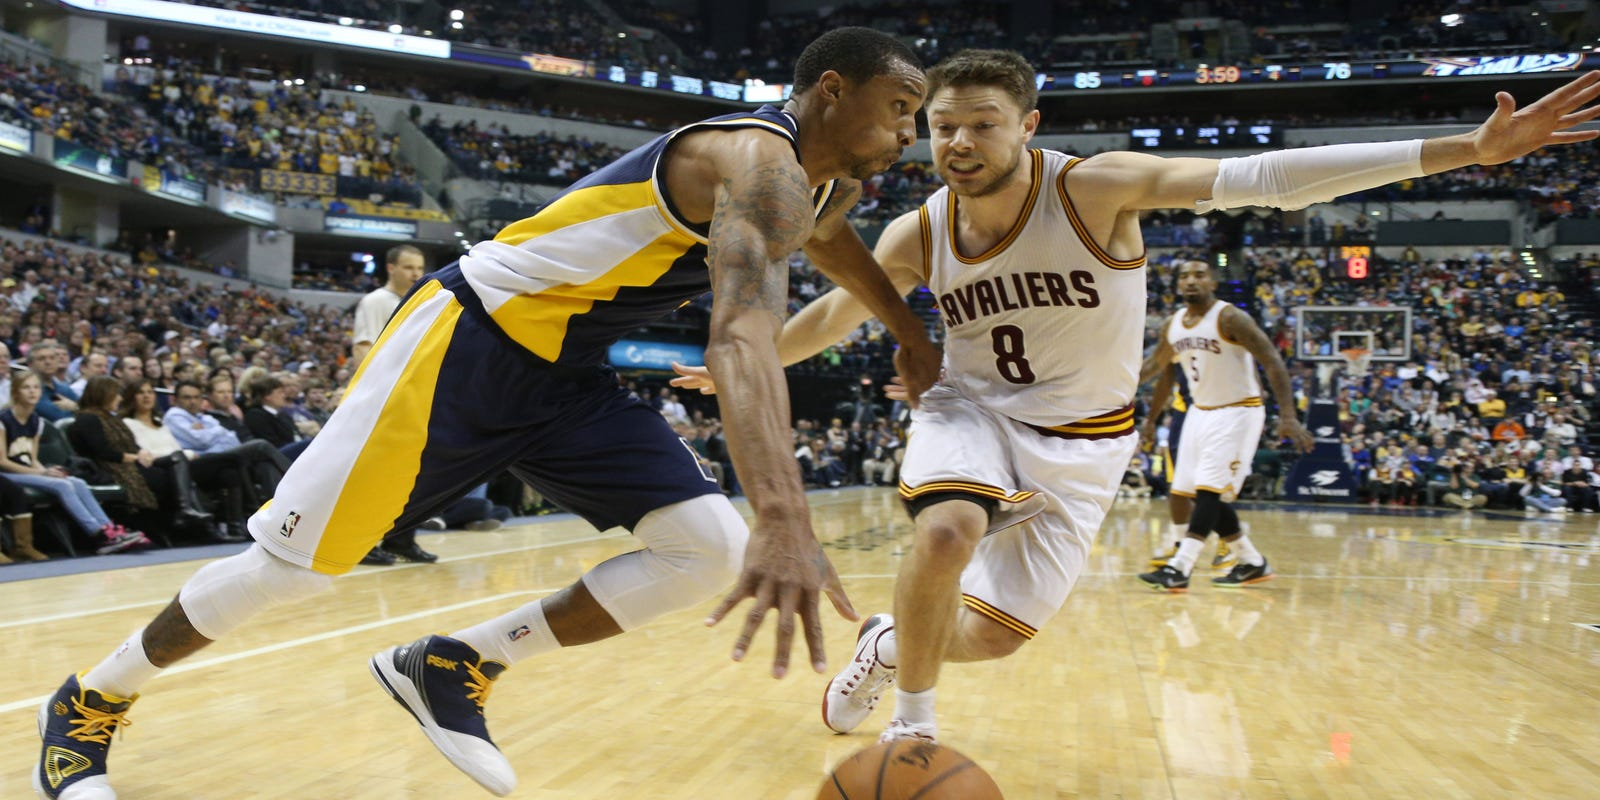 aeac562f859d4a Surging Pacers hold off short-handed Cavaliers 93-86